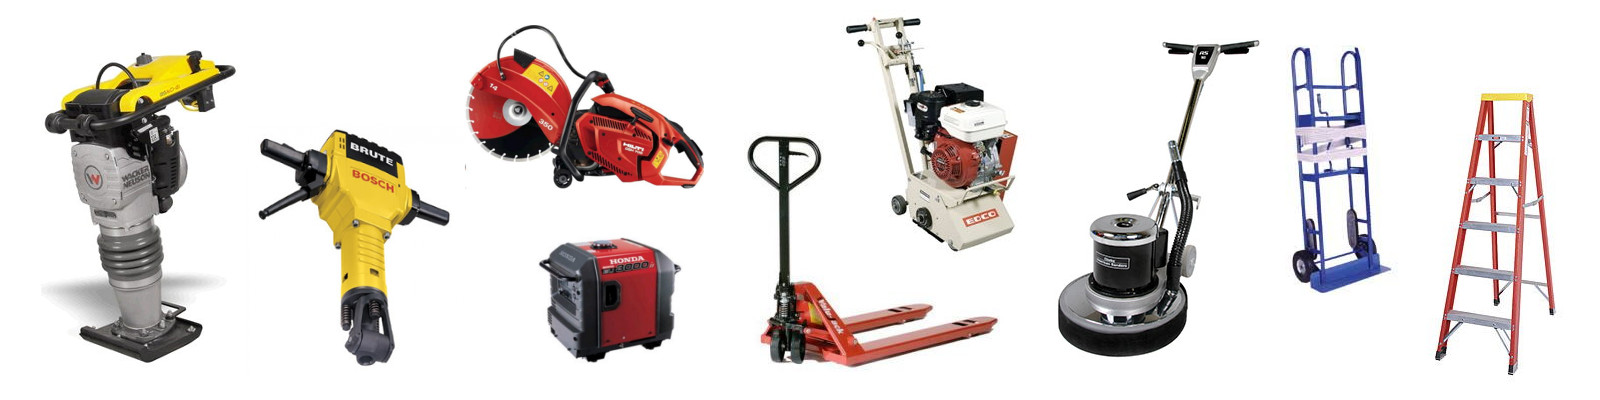 Construction Equipment & Tool Rentals in the Bay Area